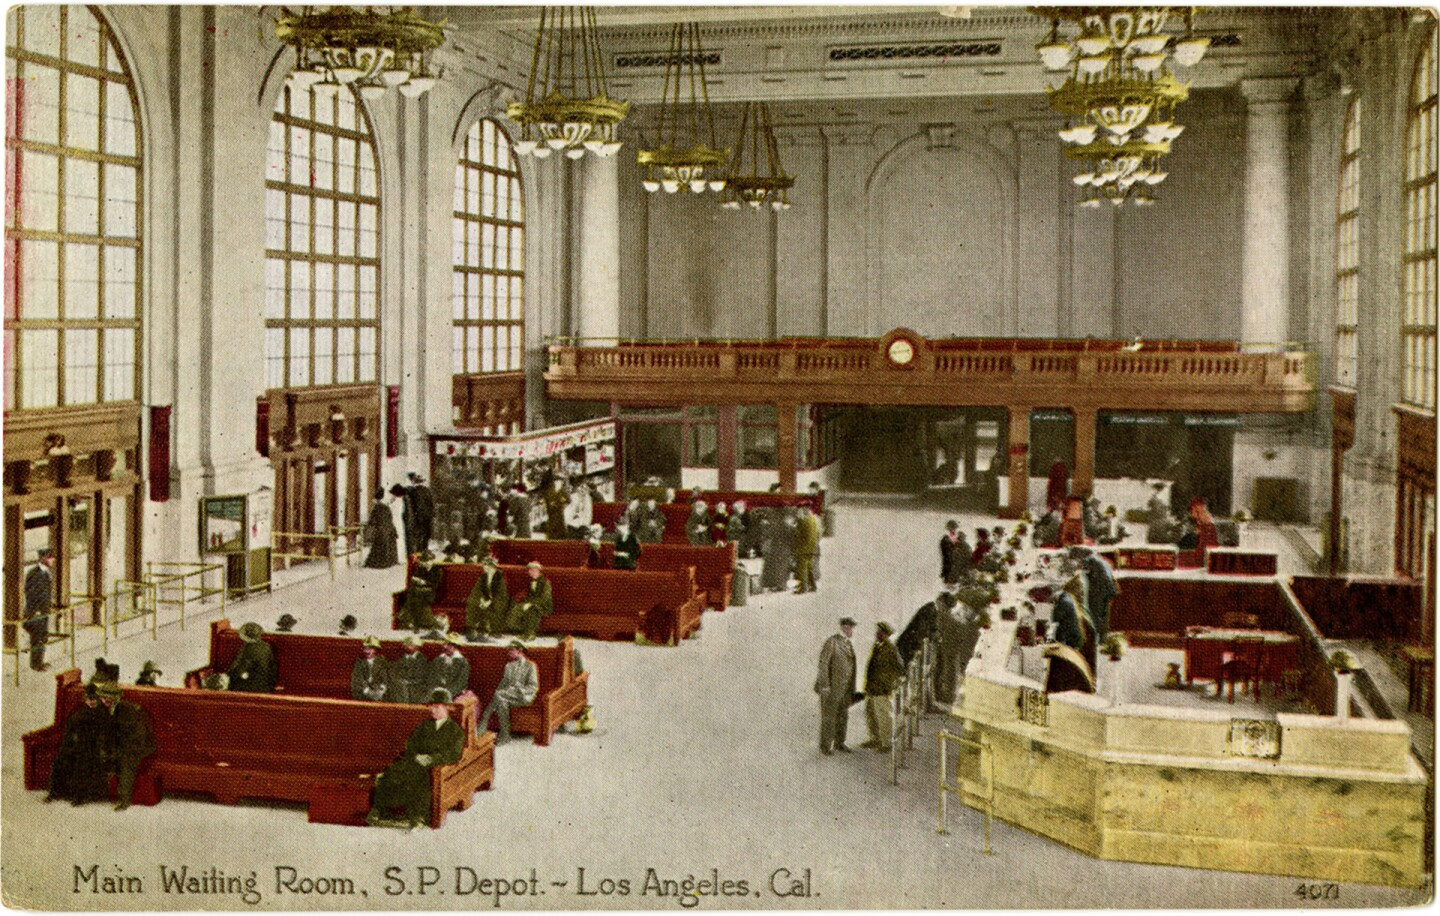 Circa 1914-1939 postcard showing the Arcade Depot's waiting room